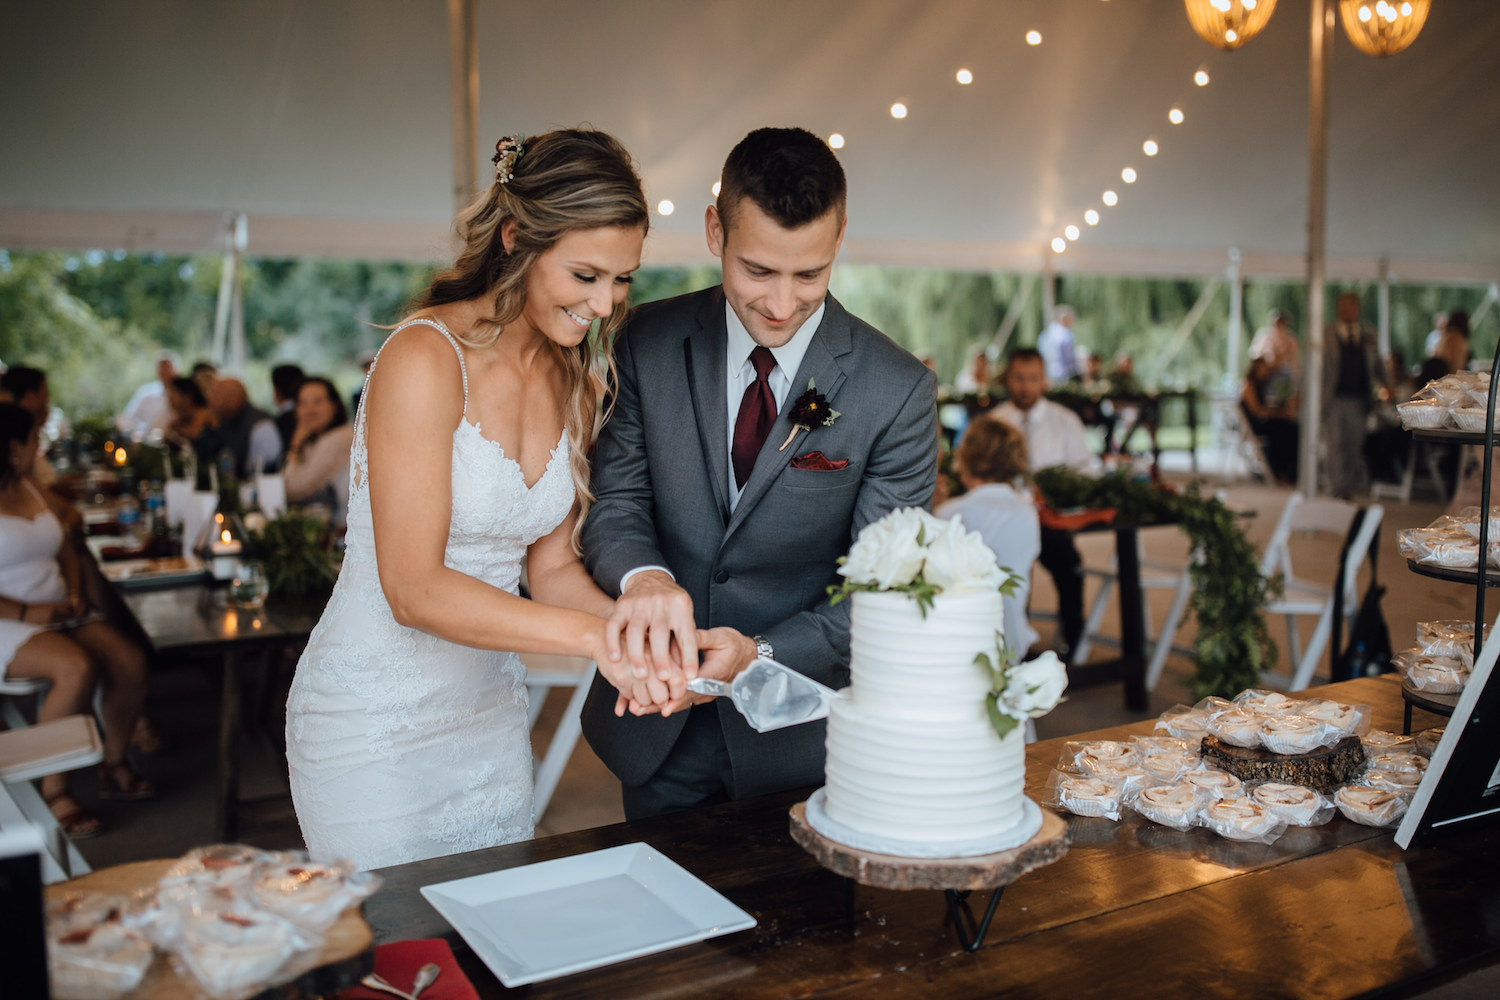 Bride and groom cutting cake at their aurora cellars wedding